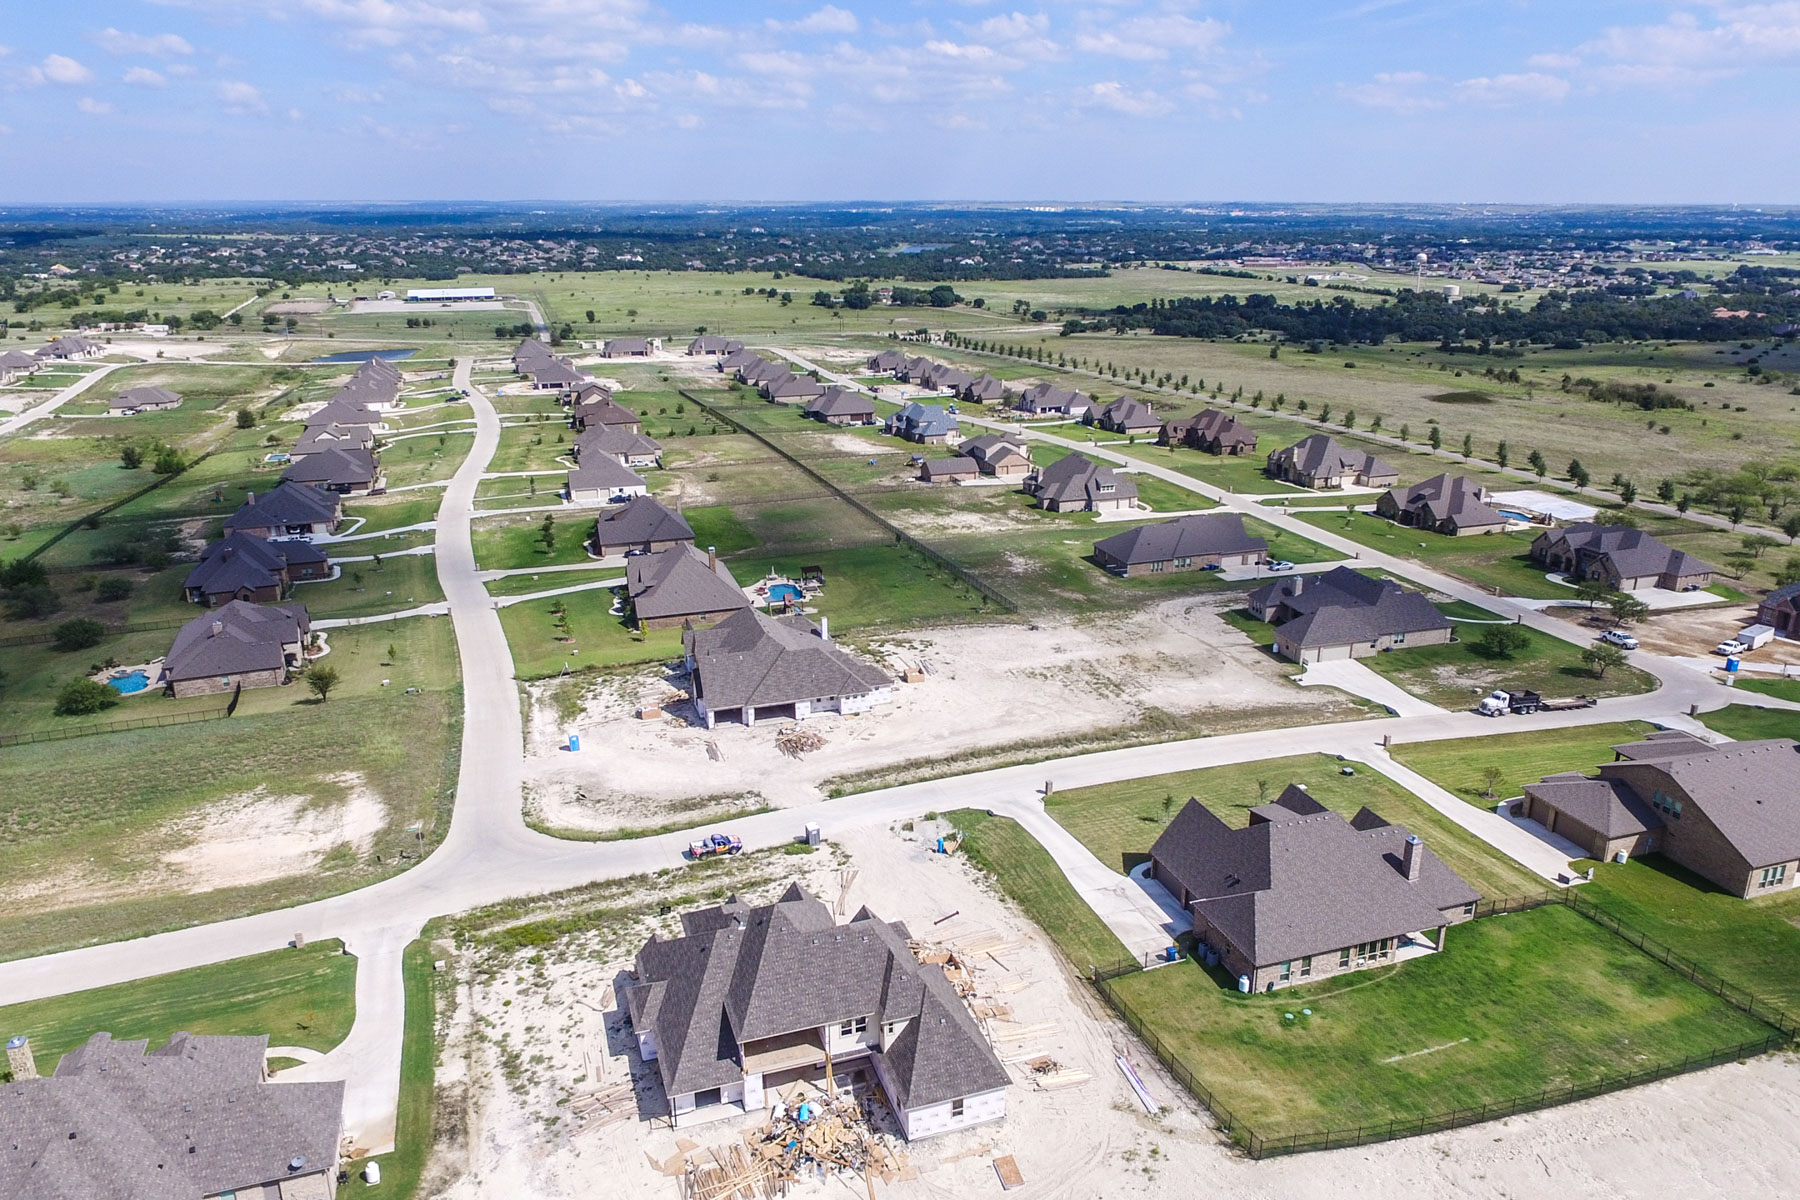 Single Family Home for Sale at Claire Vista Subdivision 155 Bearclaw Cir Aledo, Texas 76008 United States